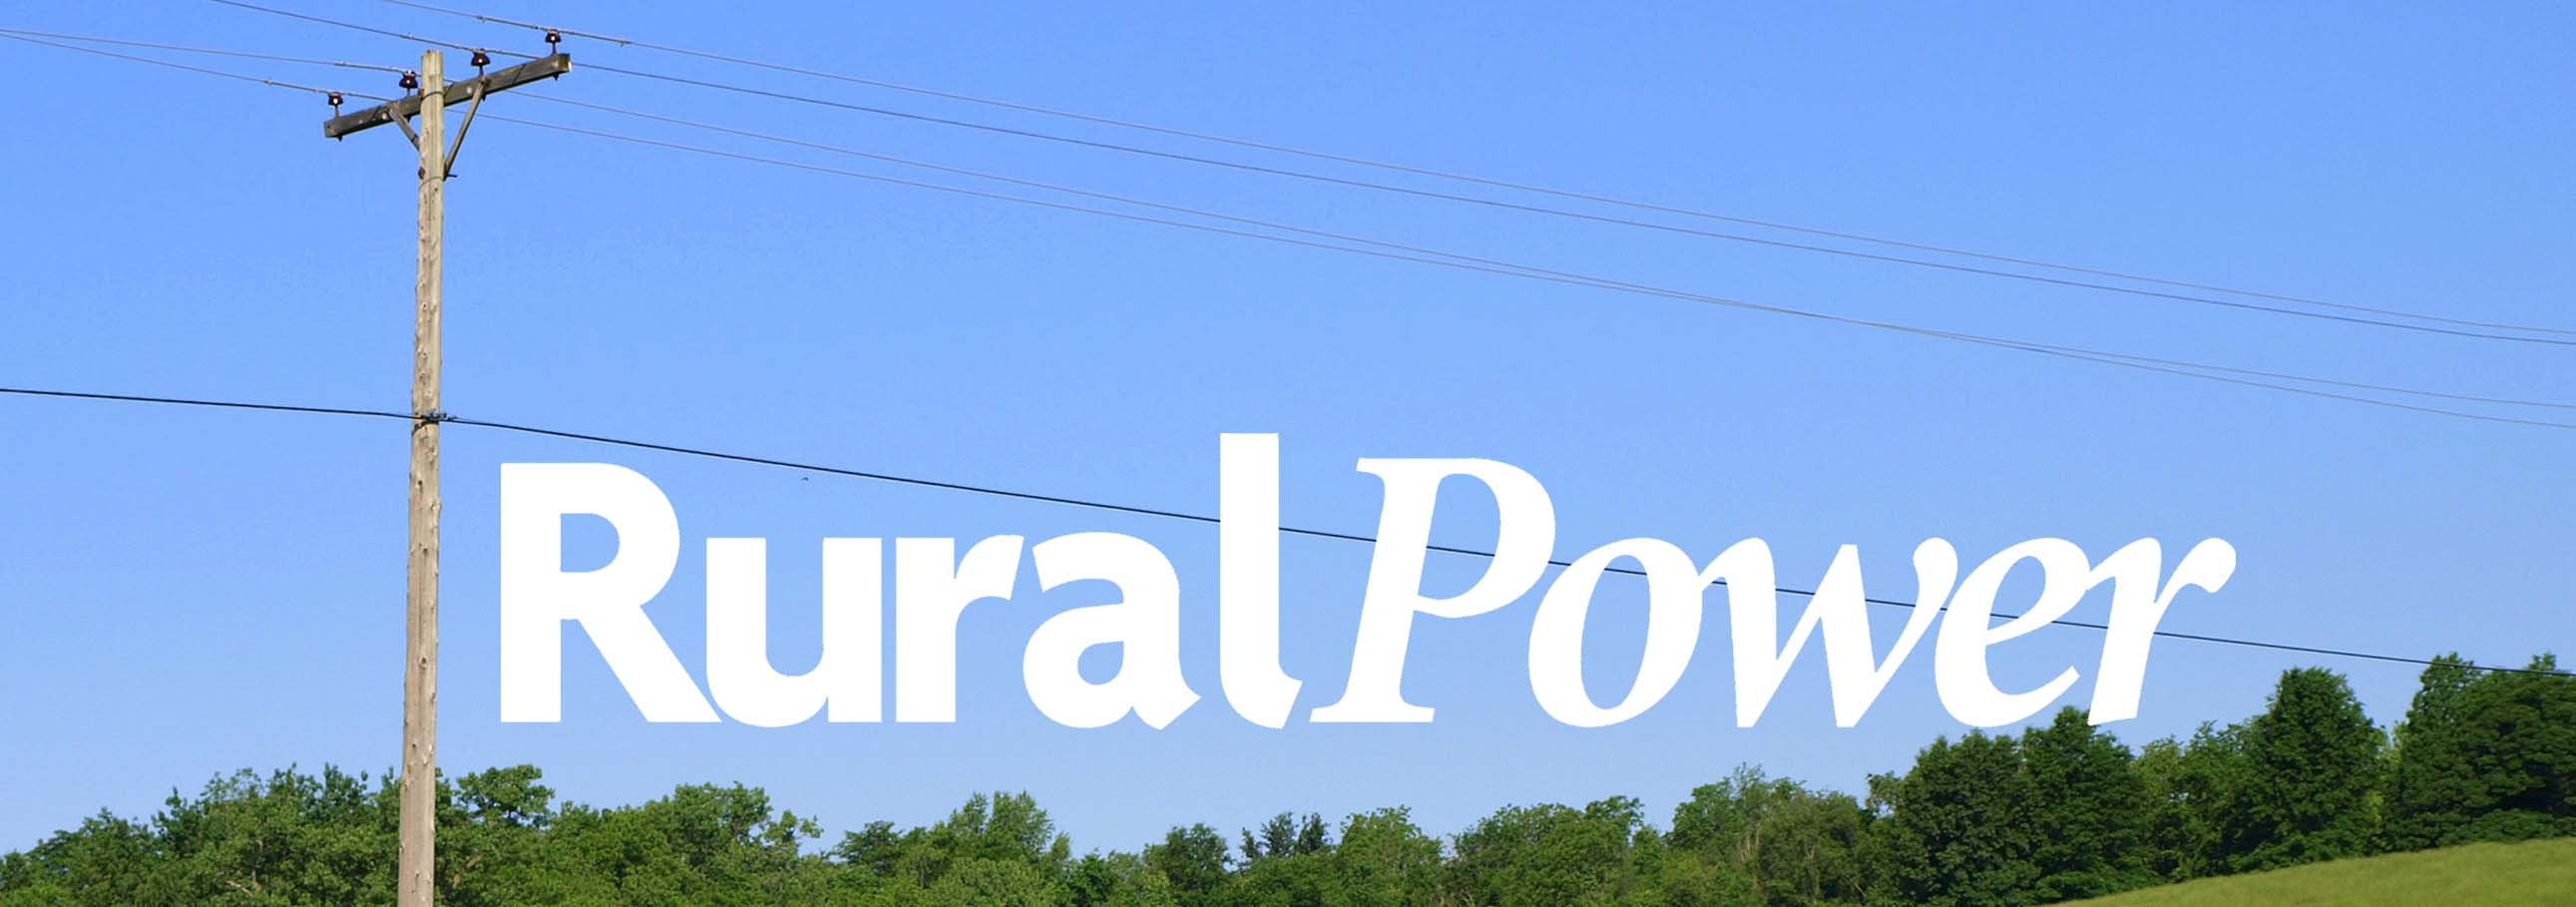 Rural Power Logo & Image